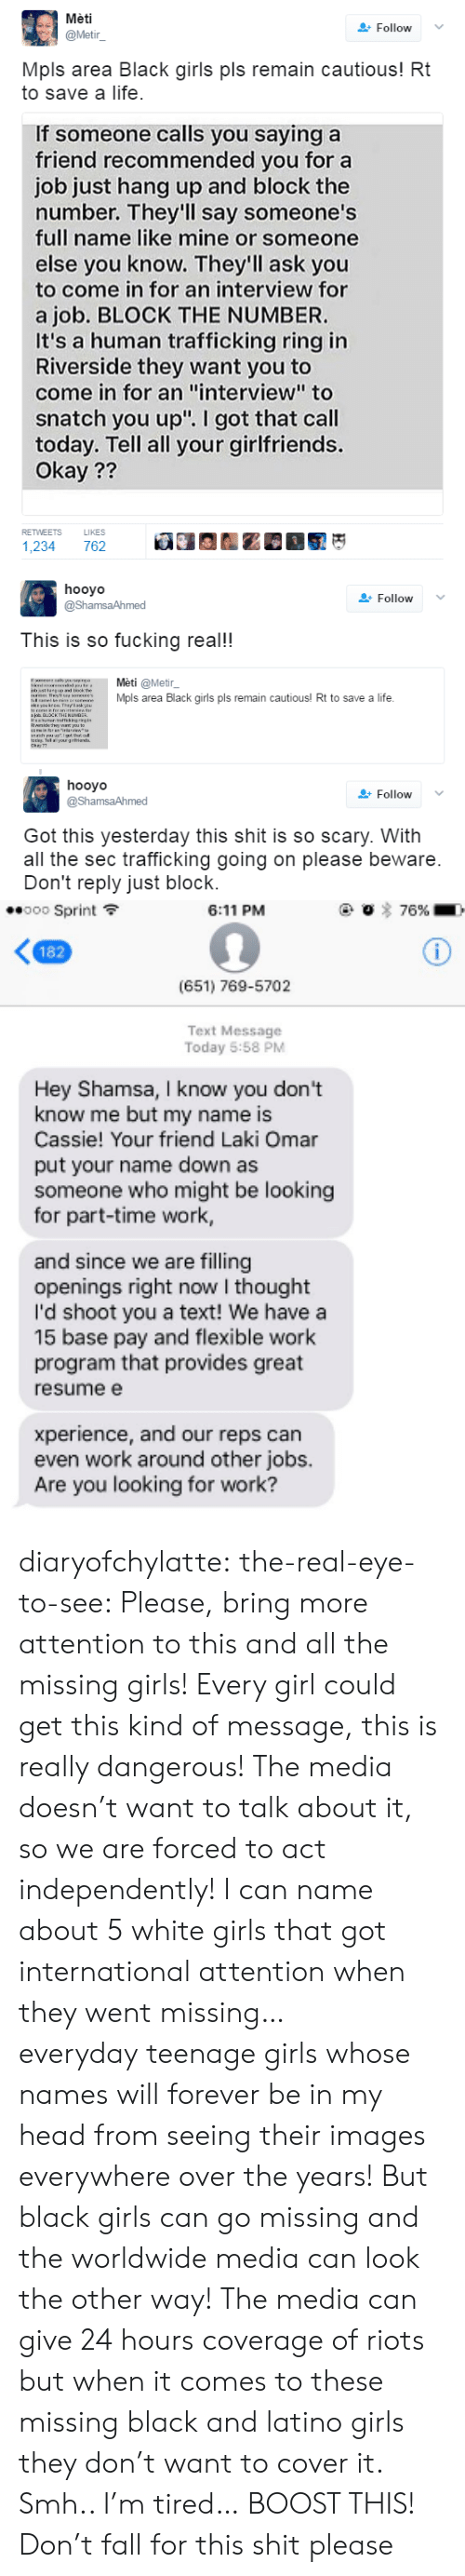 """mpls: Meti  @Metir  Follow  Mpls area Black girls pls remain cautious! Rt  to save a life  If someone calls you saying a  friend recommended you for a  job just hang up and block the  number. They'll say someone's  full name like mine or someone  else you know. They'll ask you  to come in for an interview for  a job. BLOCK THE NUMBER.  It's a human trafficking ring in  Riverside they want you to  come in for an """"interview"""" to  snatch you up"""". I got that call  today. Tell all your girlfriends.  Okay ??  RETWEETS  LIKES  1,234 762   hooyo  @ShamsaAhmed  Follow  This is so fucking real!  Mèti @Metir_  urwMpls  area Black girls pls remain  cautious! Rt to save a life.   hooyo  @ShamsaAhmed  Follow  Got this yesterday this shit is so scary. With  all the sec trafficking going on please beware  Don't reply just block.   Sprint  6:11 PM  (651) 769-5702  Text Message  Today 5:58 PM  Hey Shamsa, I know you dont  know me but my name is  Cassie! Your friend Laki Omar  put your name down as  someone who might be looking  for part-time work  and since we are filling  openings right now I thought  I'd shoot you a text! We have a  15 base pay and flexible work  program that provides great  resumee  xperience, and our reps can  even work around other jobs  Are you looking for work? diaryofchylatte:   the-real-eye-to-see:  Please, bring more attention to this and all the missing girls! Every girl could get this kind of message, this is really dangerous! The media doesn't want to talk about it, so we are forced to act independently! I can name about 5 white girls that got international attention when they went missing… everydayteenage girls whose names will forever be in my head from seeing their images everywhere over the years! But black girls can go missing and the worldwide media can look the other way! The media can give 24 hours coverage of riots but when it comes to these missing black and latino girls they don't want to cover it. Smh.. I'm tired… BOOST THIS!   Don't fall for """